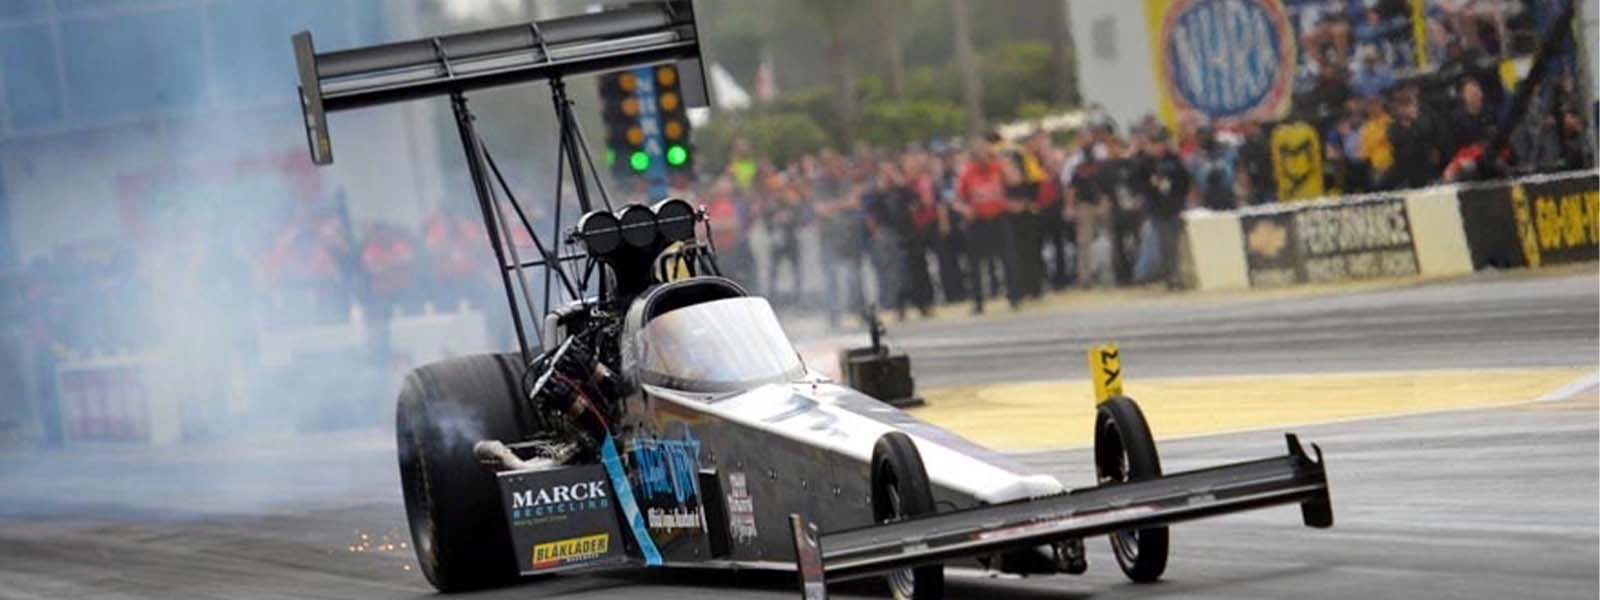 Magic Dry pro Scott Palmer securing all the pieces to put him on top of Top Fuel